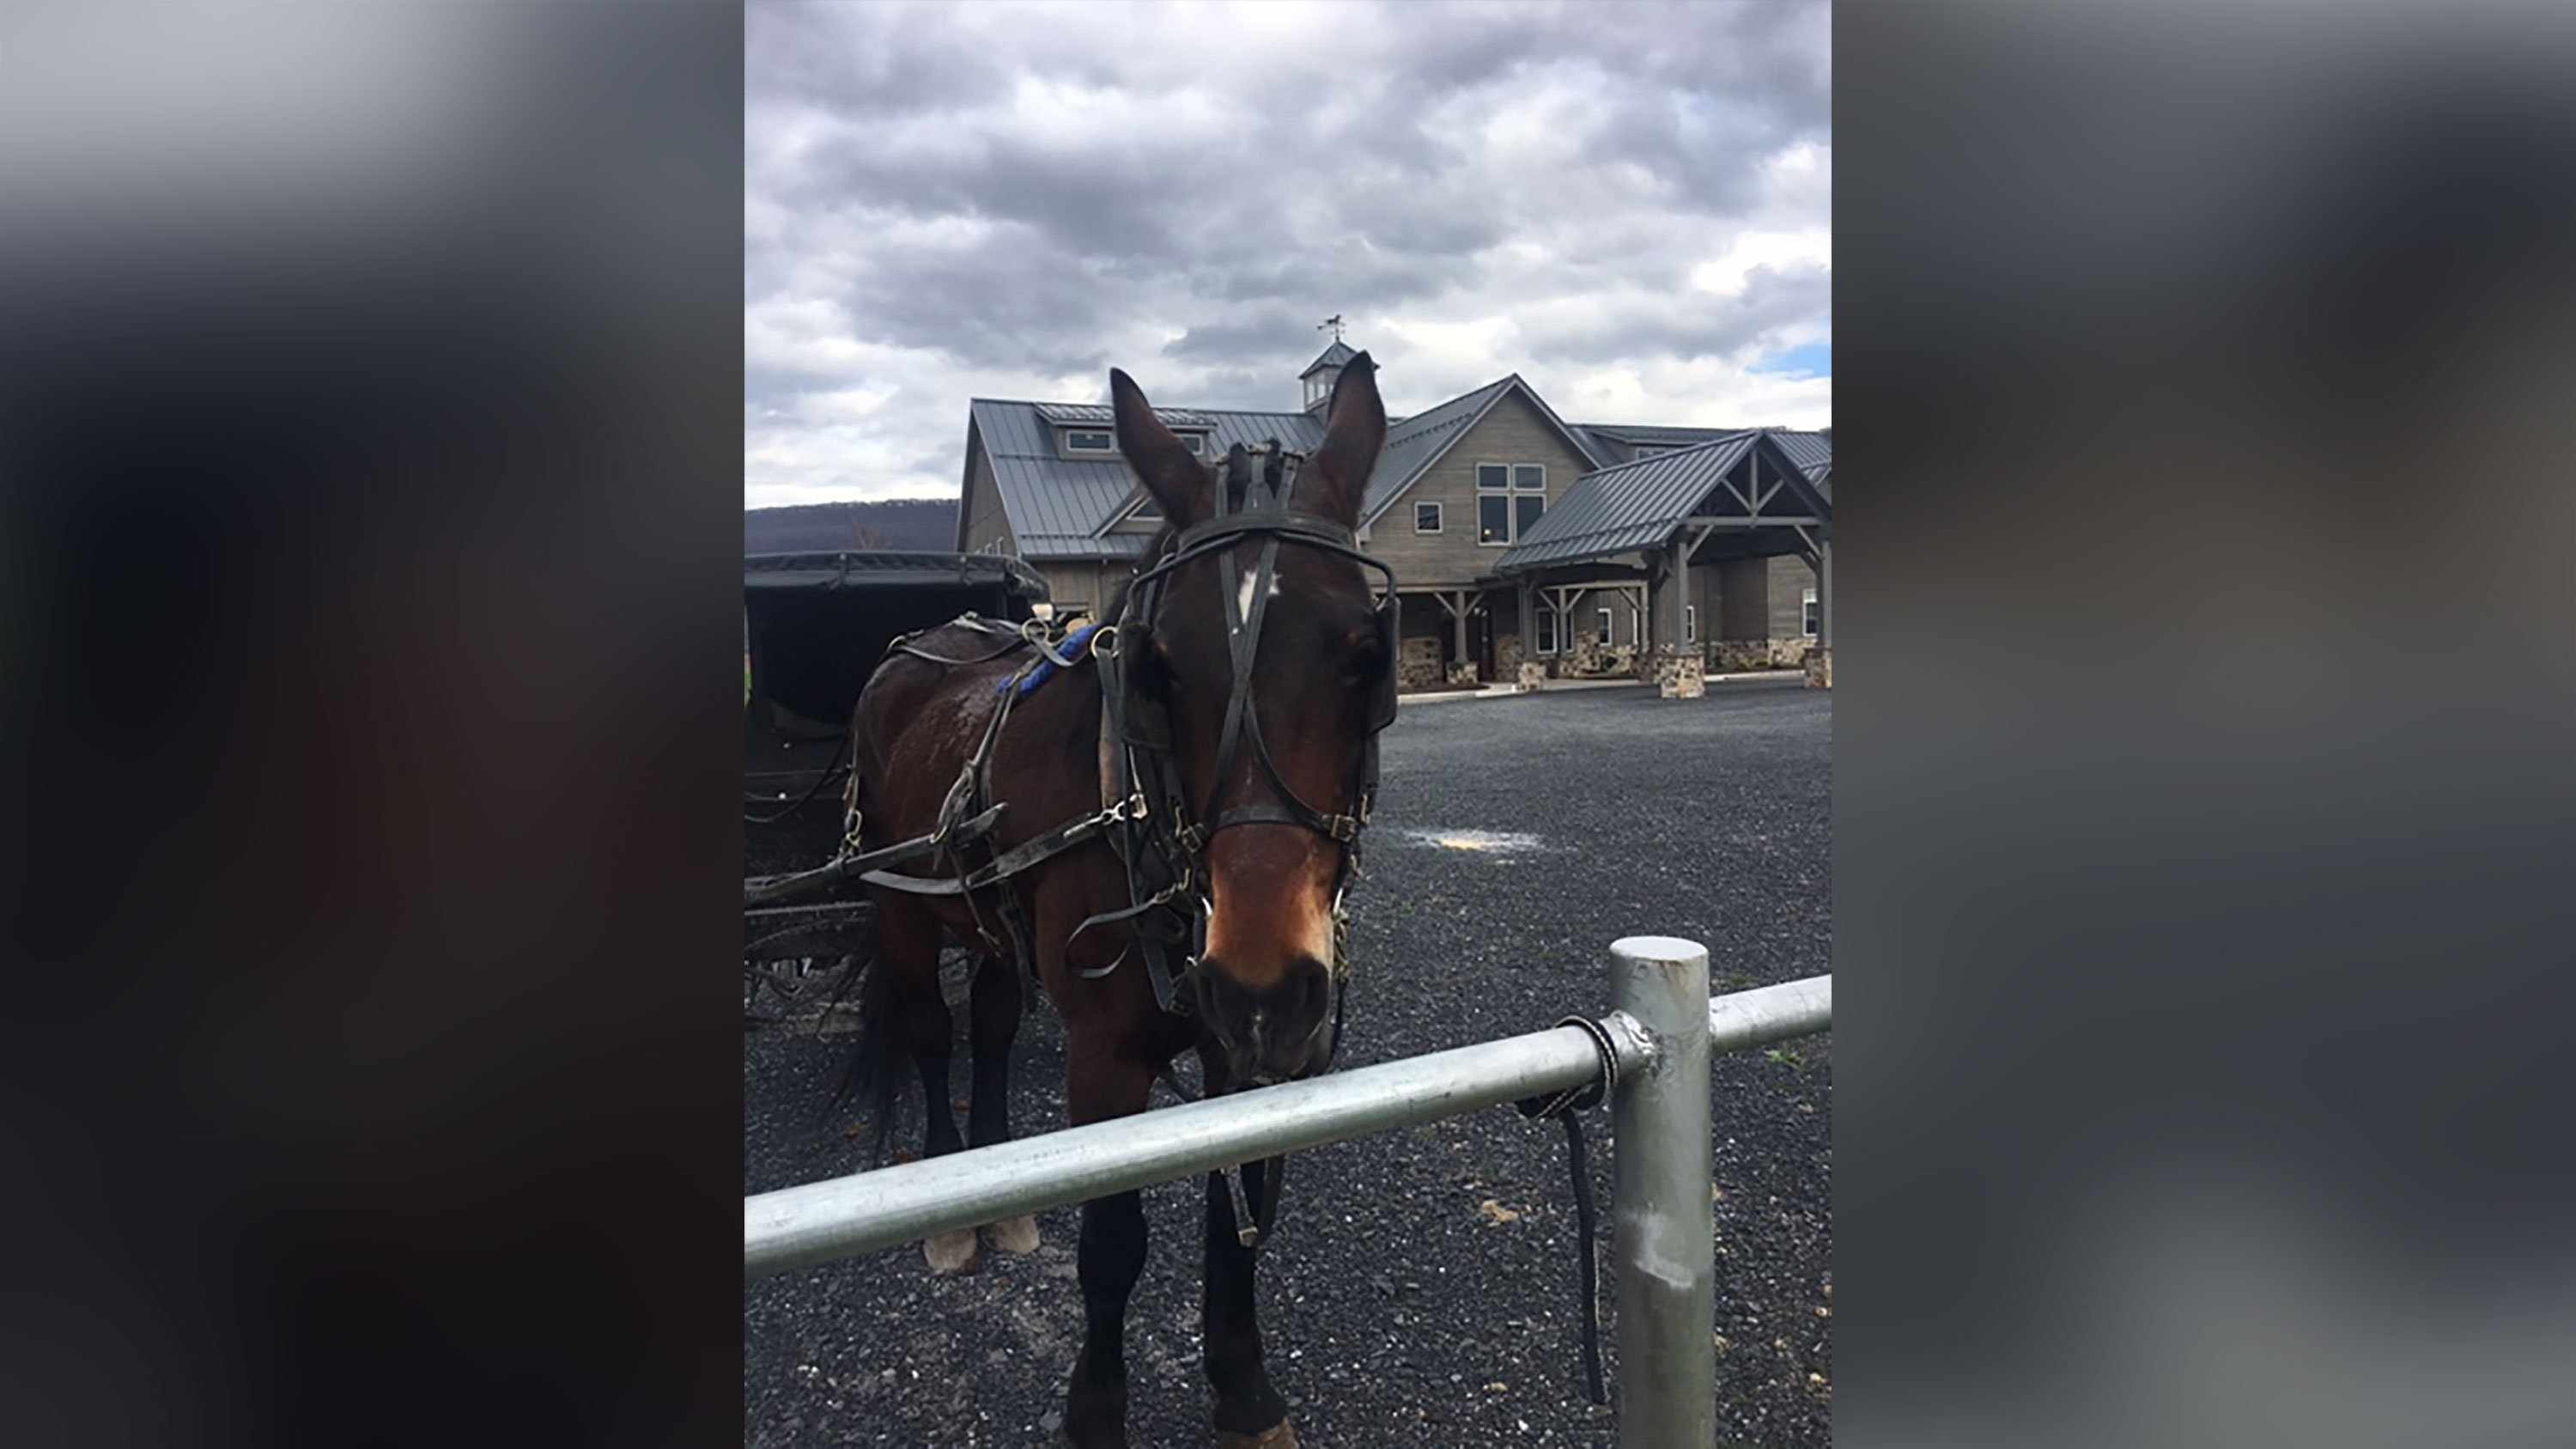 A clinic in Pennsylvania is bringing the Amish drive-through coronavirus testing for their horse and buggies